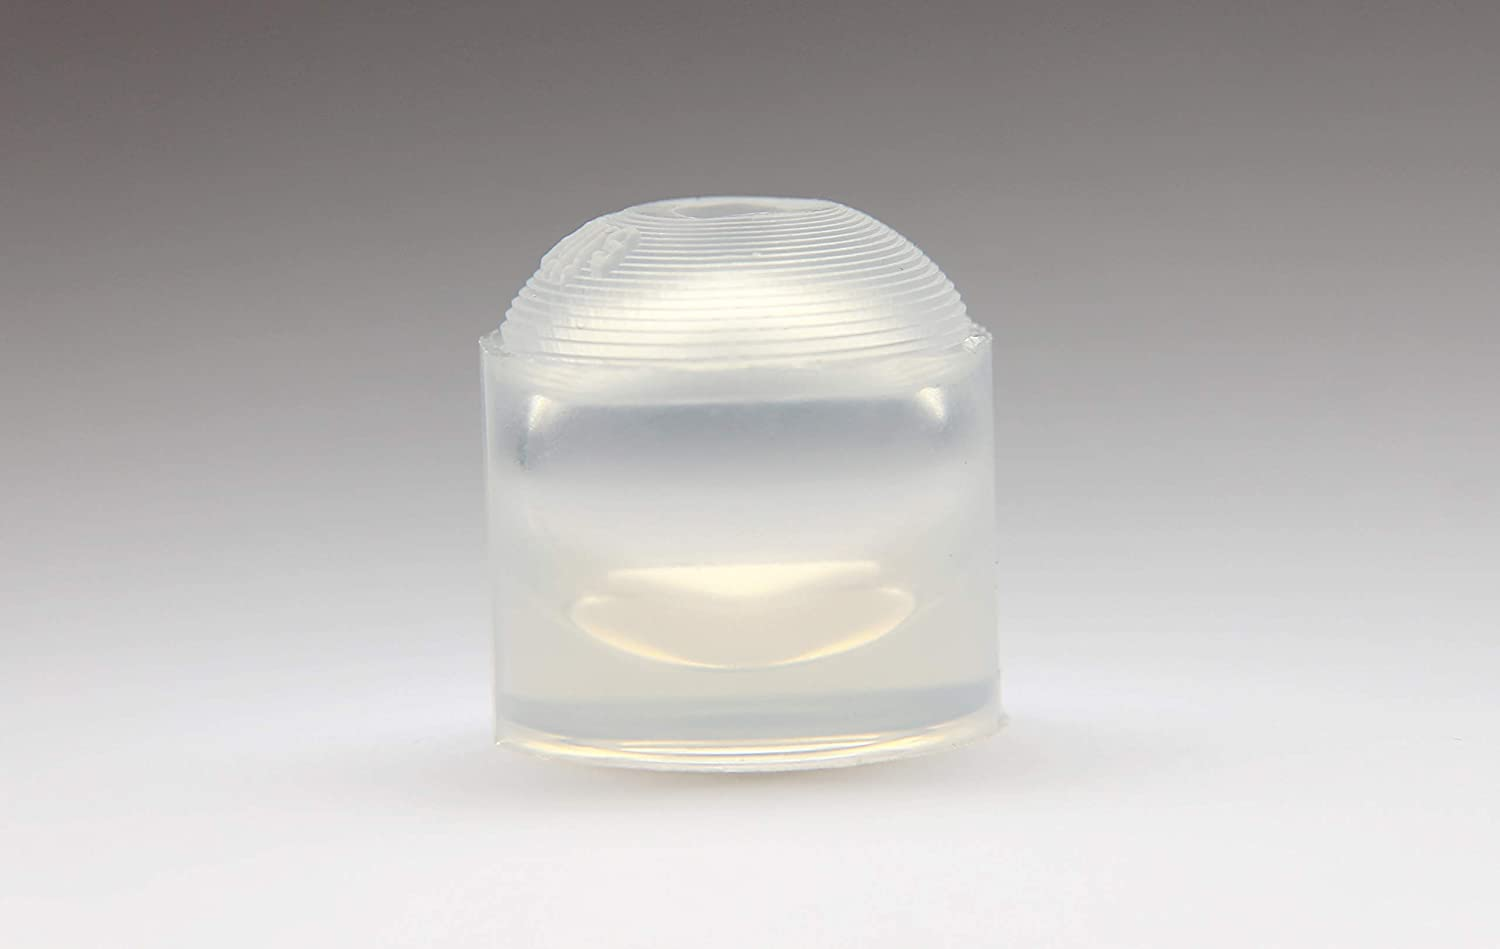 25 mm Clear silicone sphere mold for resin ball for jewellery DIY HQ transparent vacumed silicone.